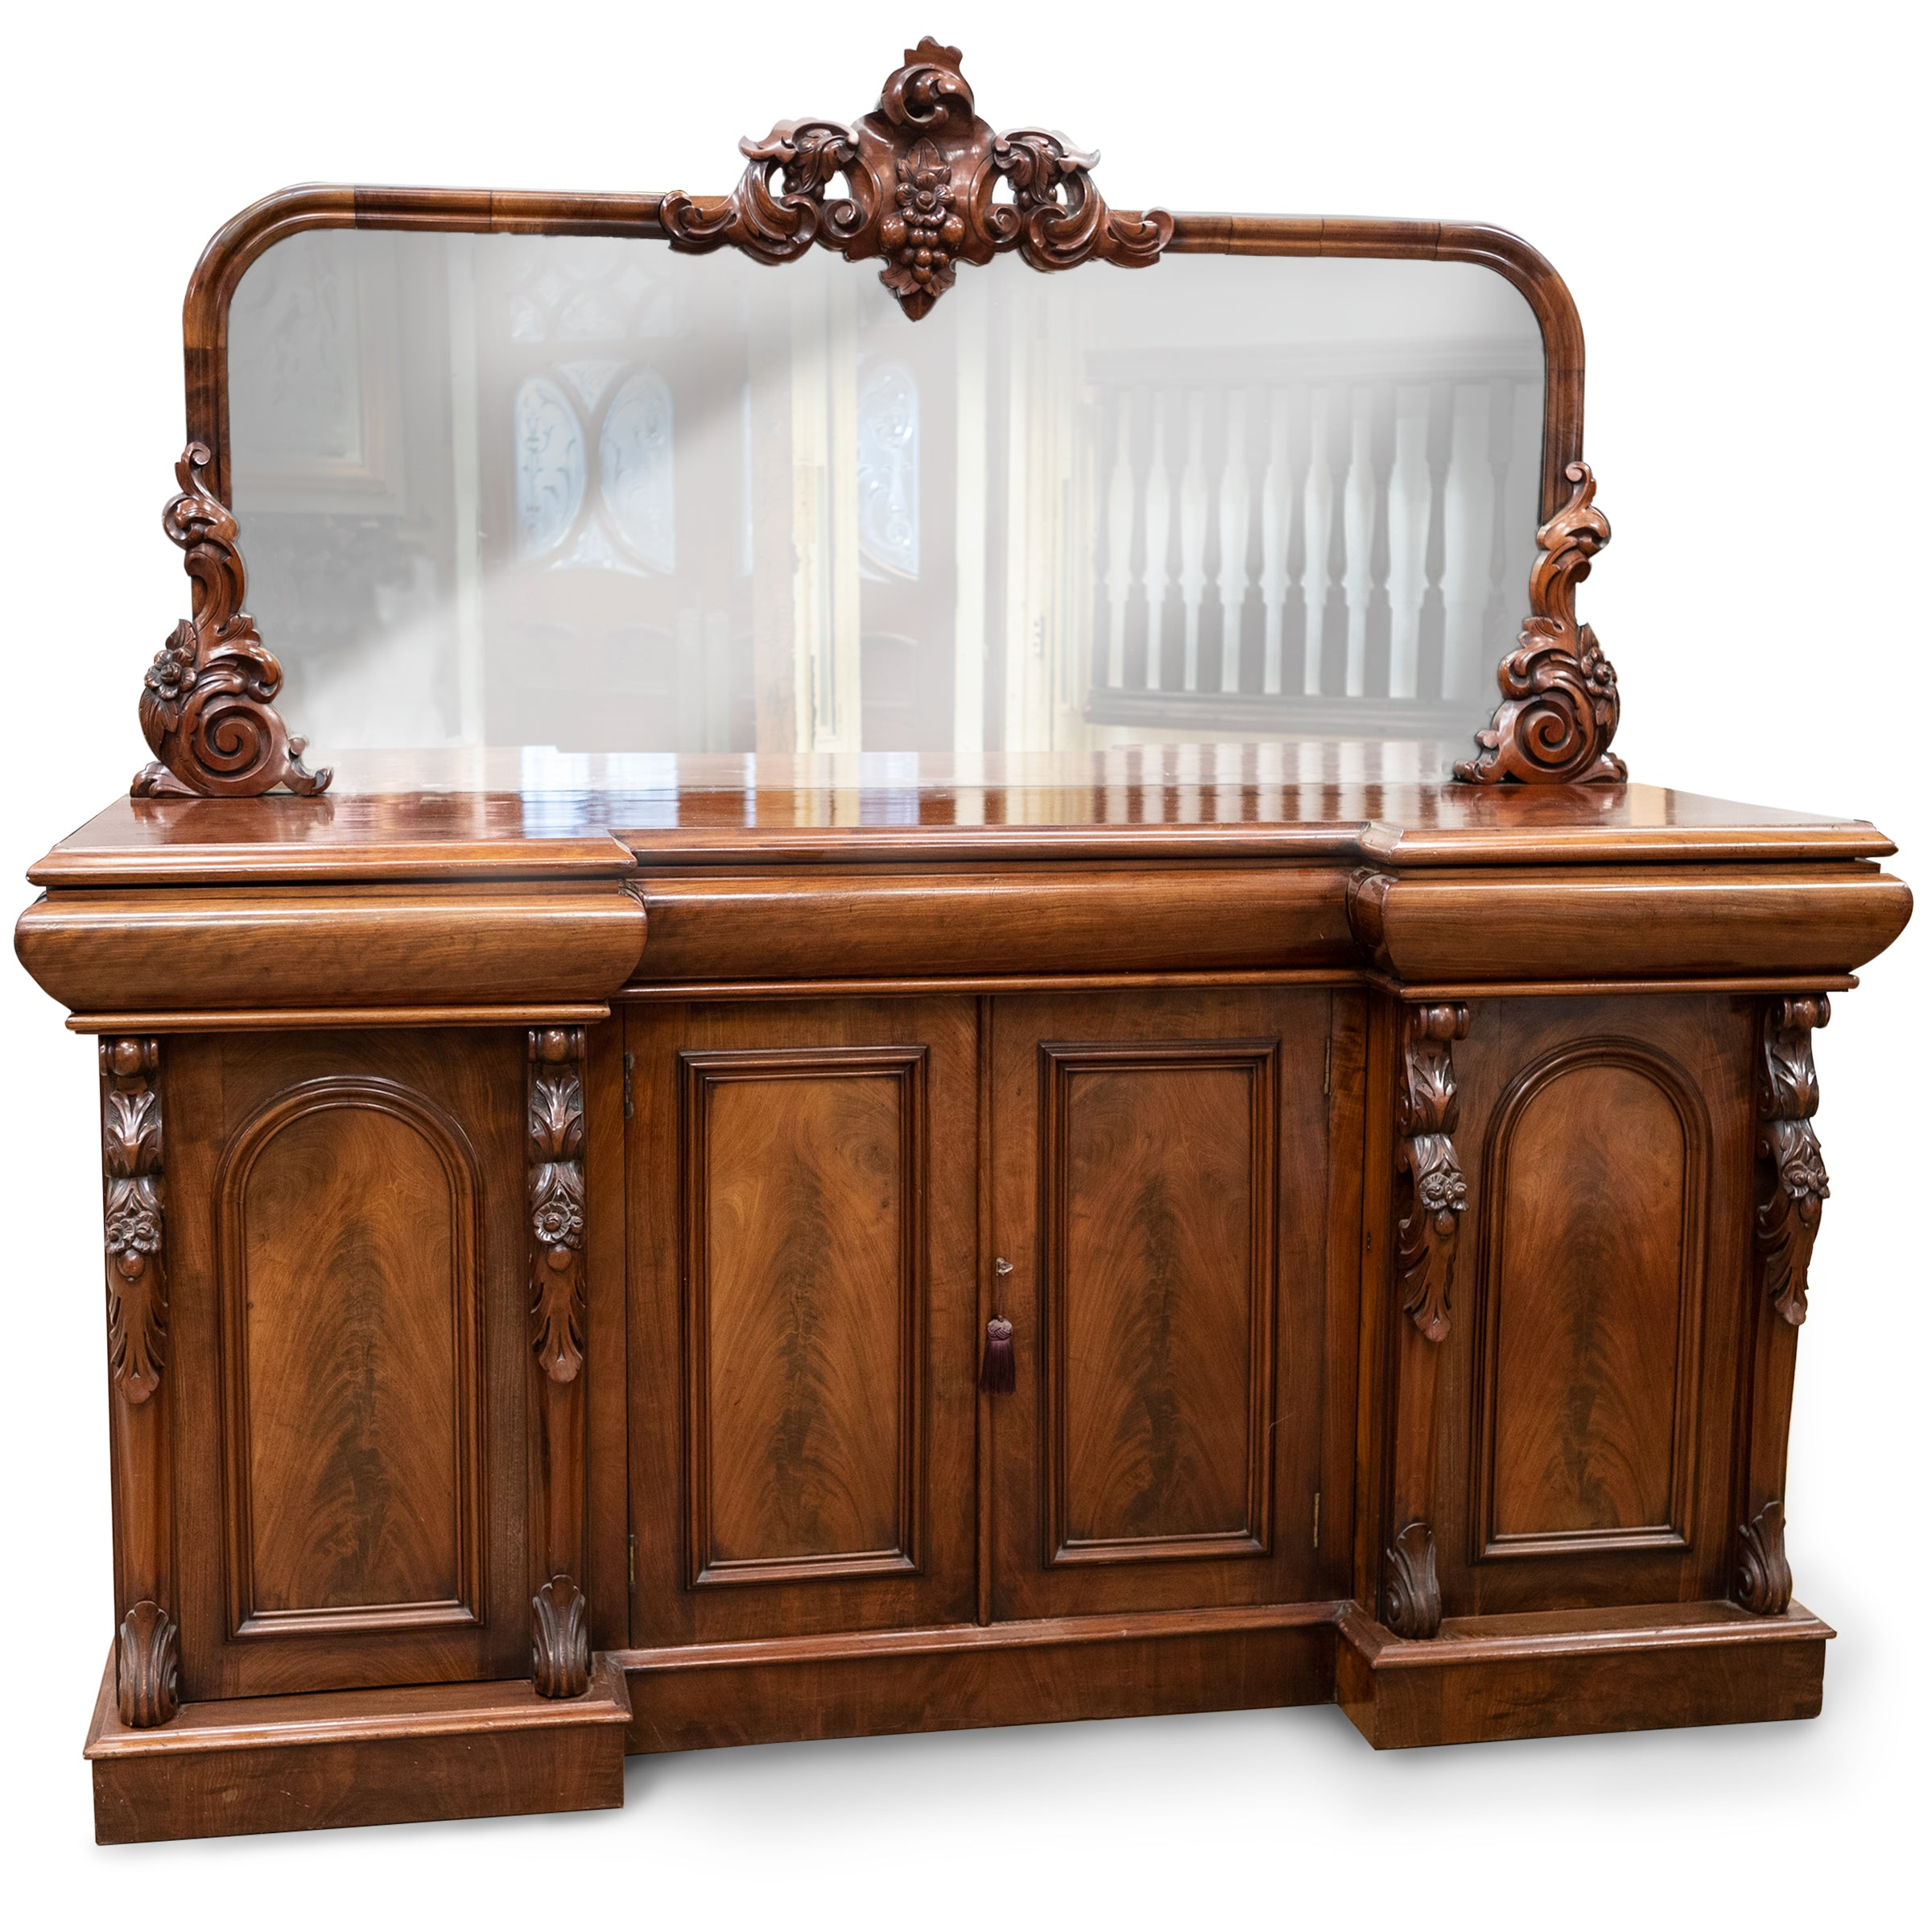 Antique Ornate Carved Mahogany Sideboard with Mirror and Secret Drawers